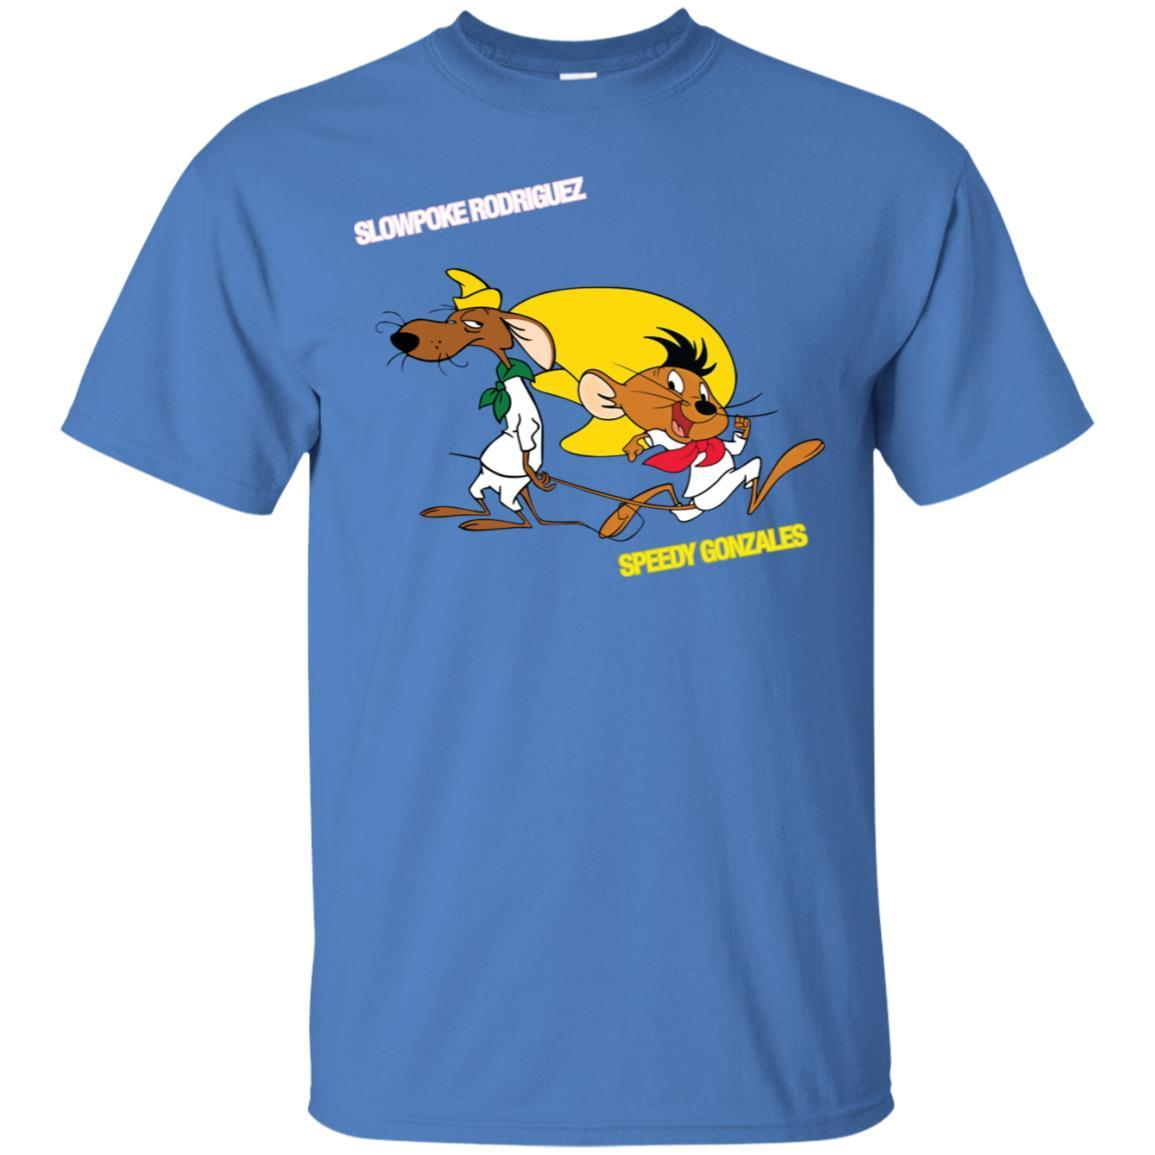 Slowpoke Rodriguez Speedy Gonzalez Funny Vintage Cartoon Tee T-Shirt G200 Gildan Ultra Cotton T-Shirt / Iris / 3XL